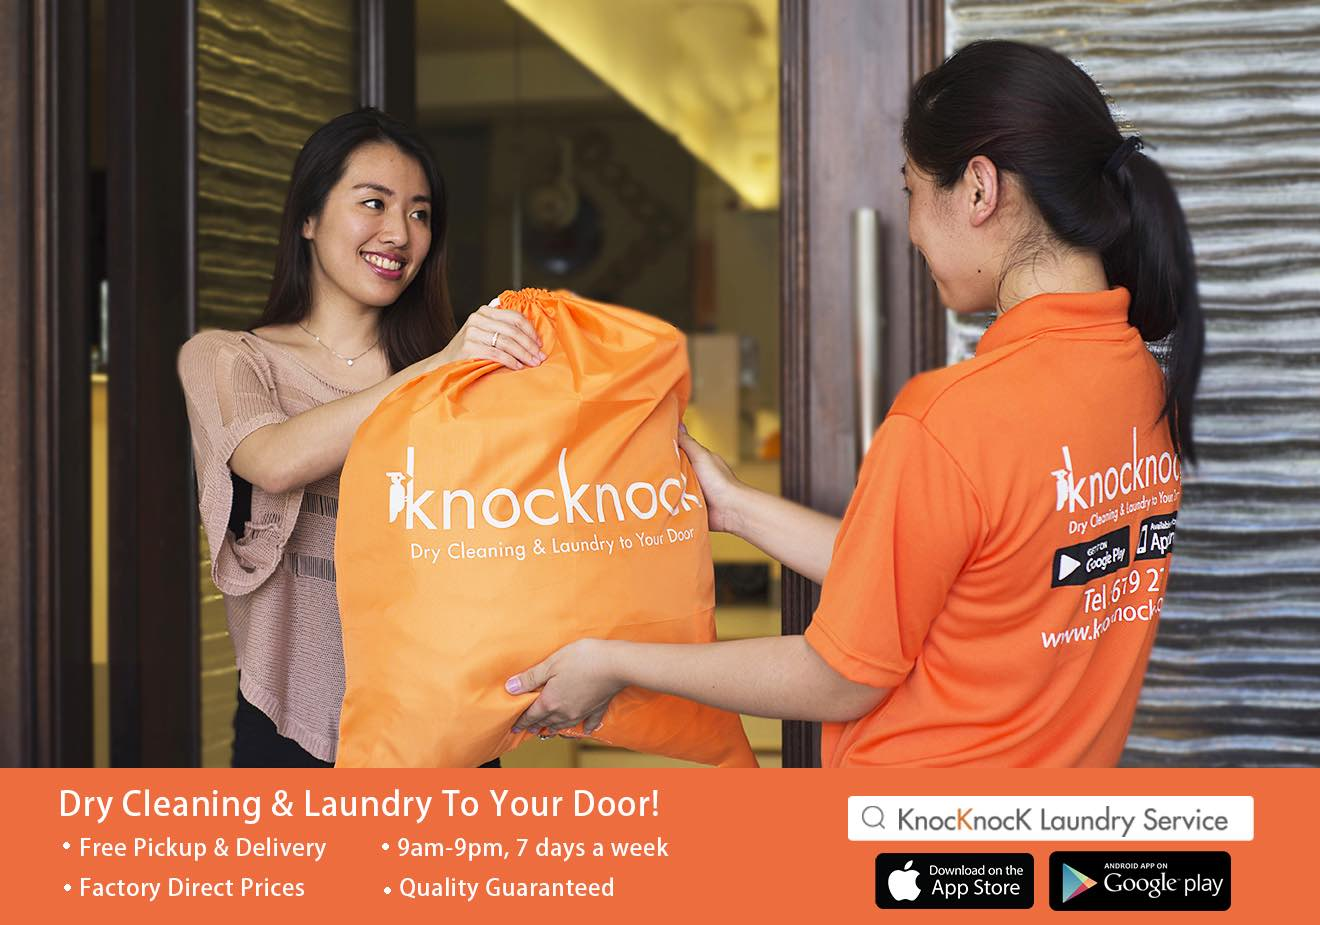 Knocknock Dry Cleaning and Laundry to your door - AspirantSG